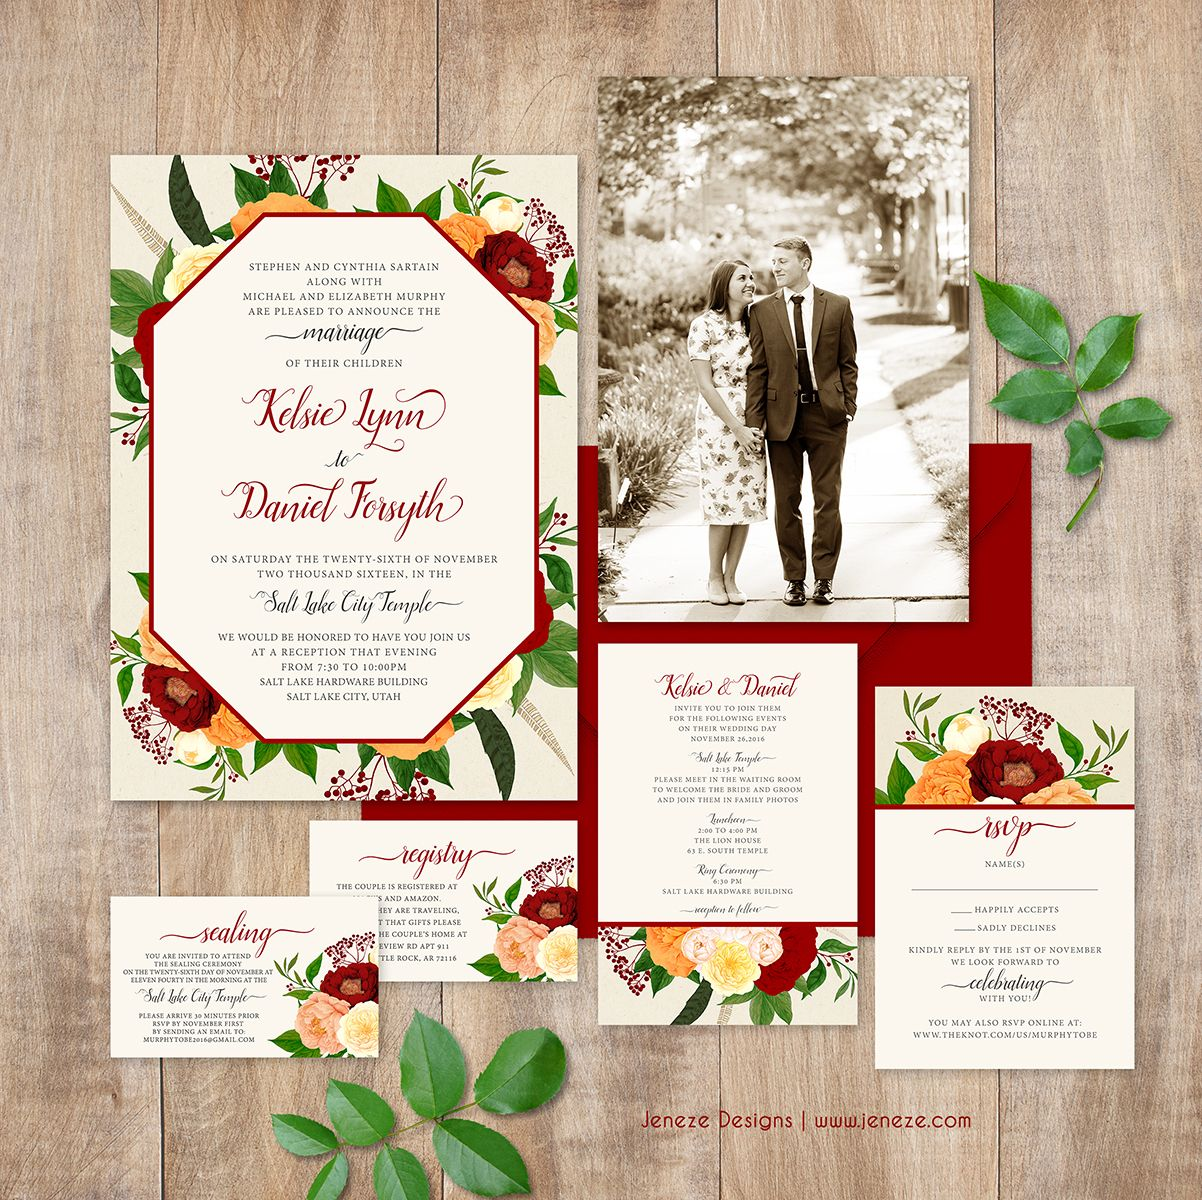 Beautiful floral wedding invitations with reds and oranges perfect